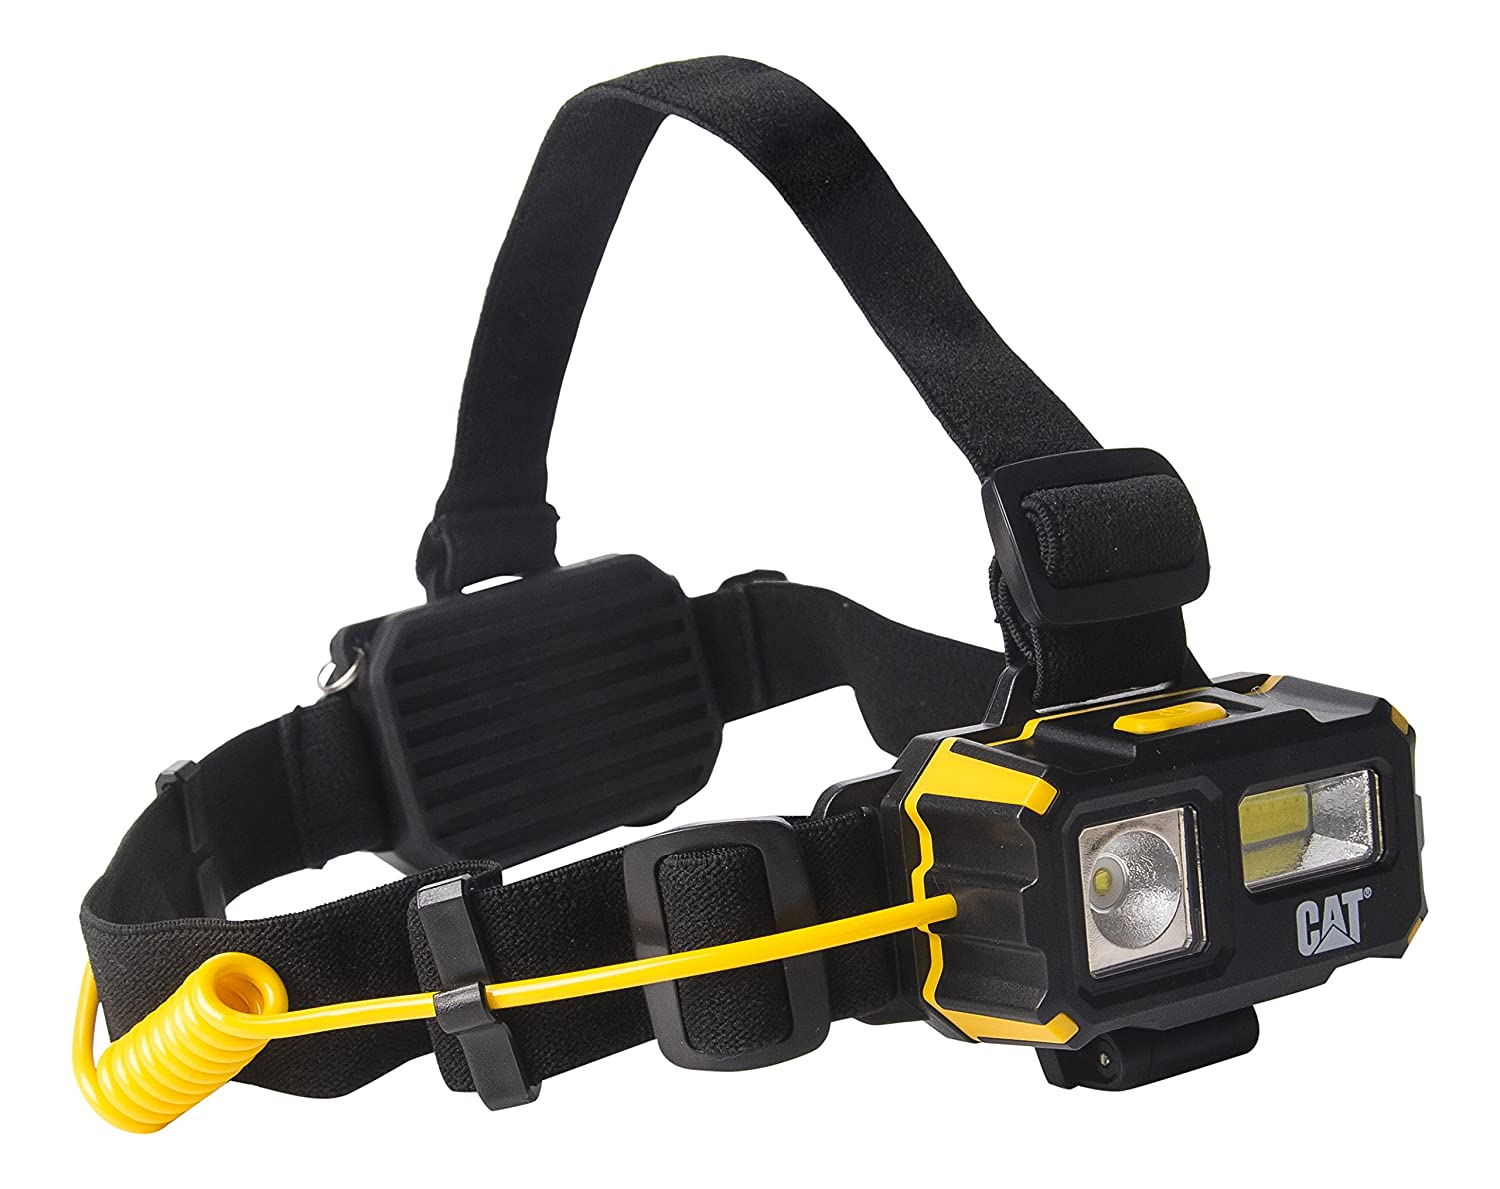 CAT CT4120 250 lm Multi Function LED Headlamp, Black